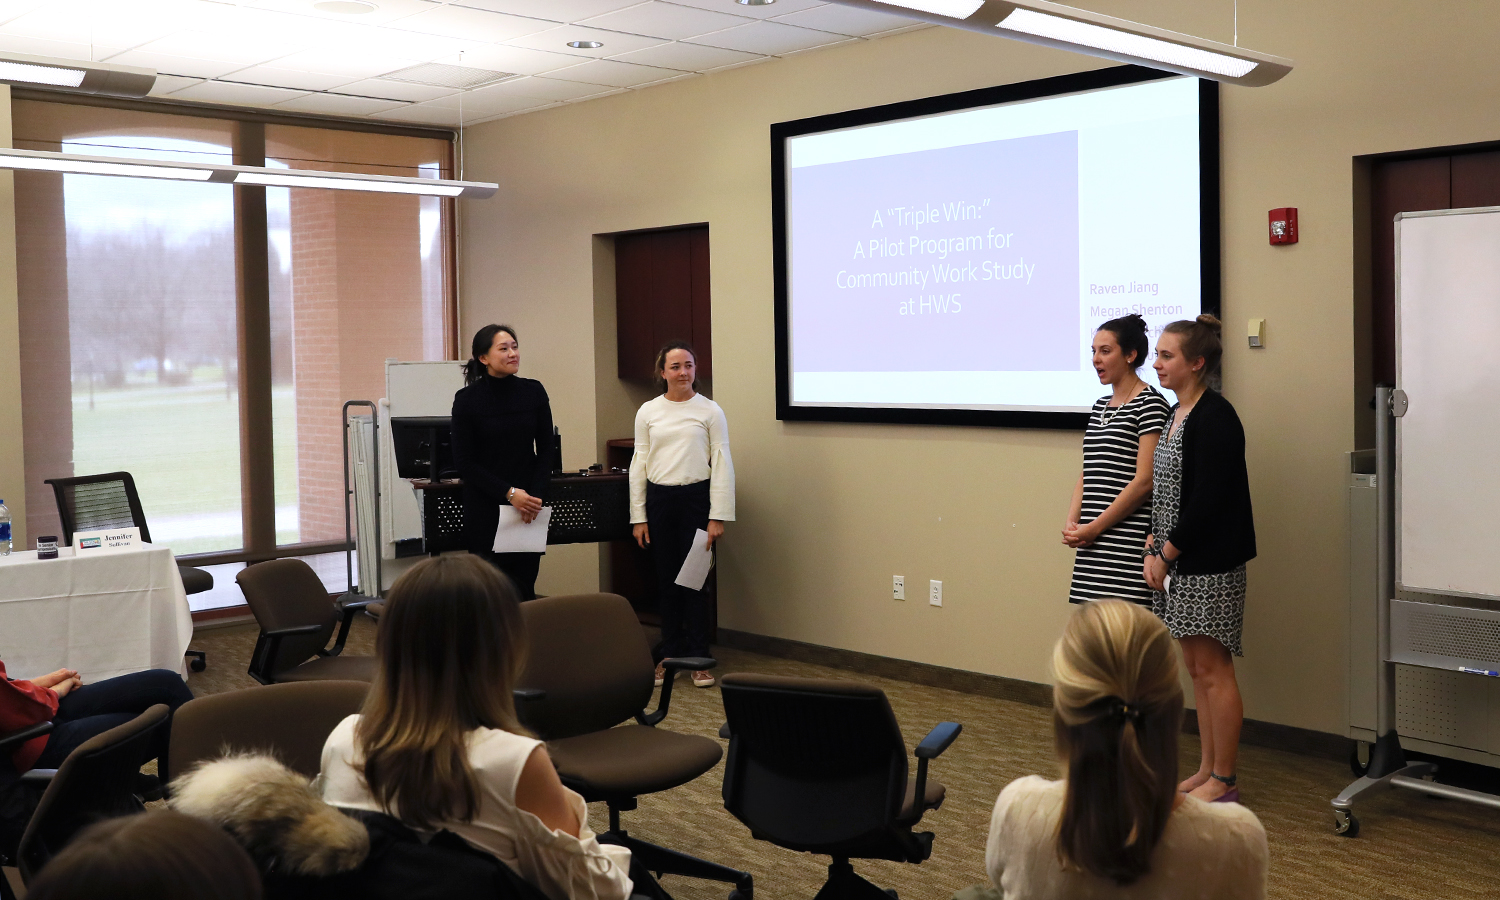 Yujun Jiang '18, Megan Shenton '18, Katherine Storch '18 and Jennifer Sullivan '18 present thier research on a pilot program for community work stdy at HWS during Senior Symposium.